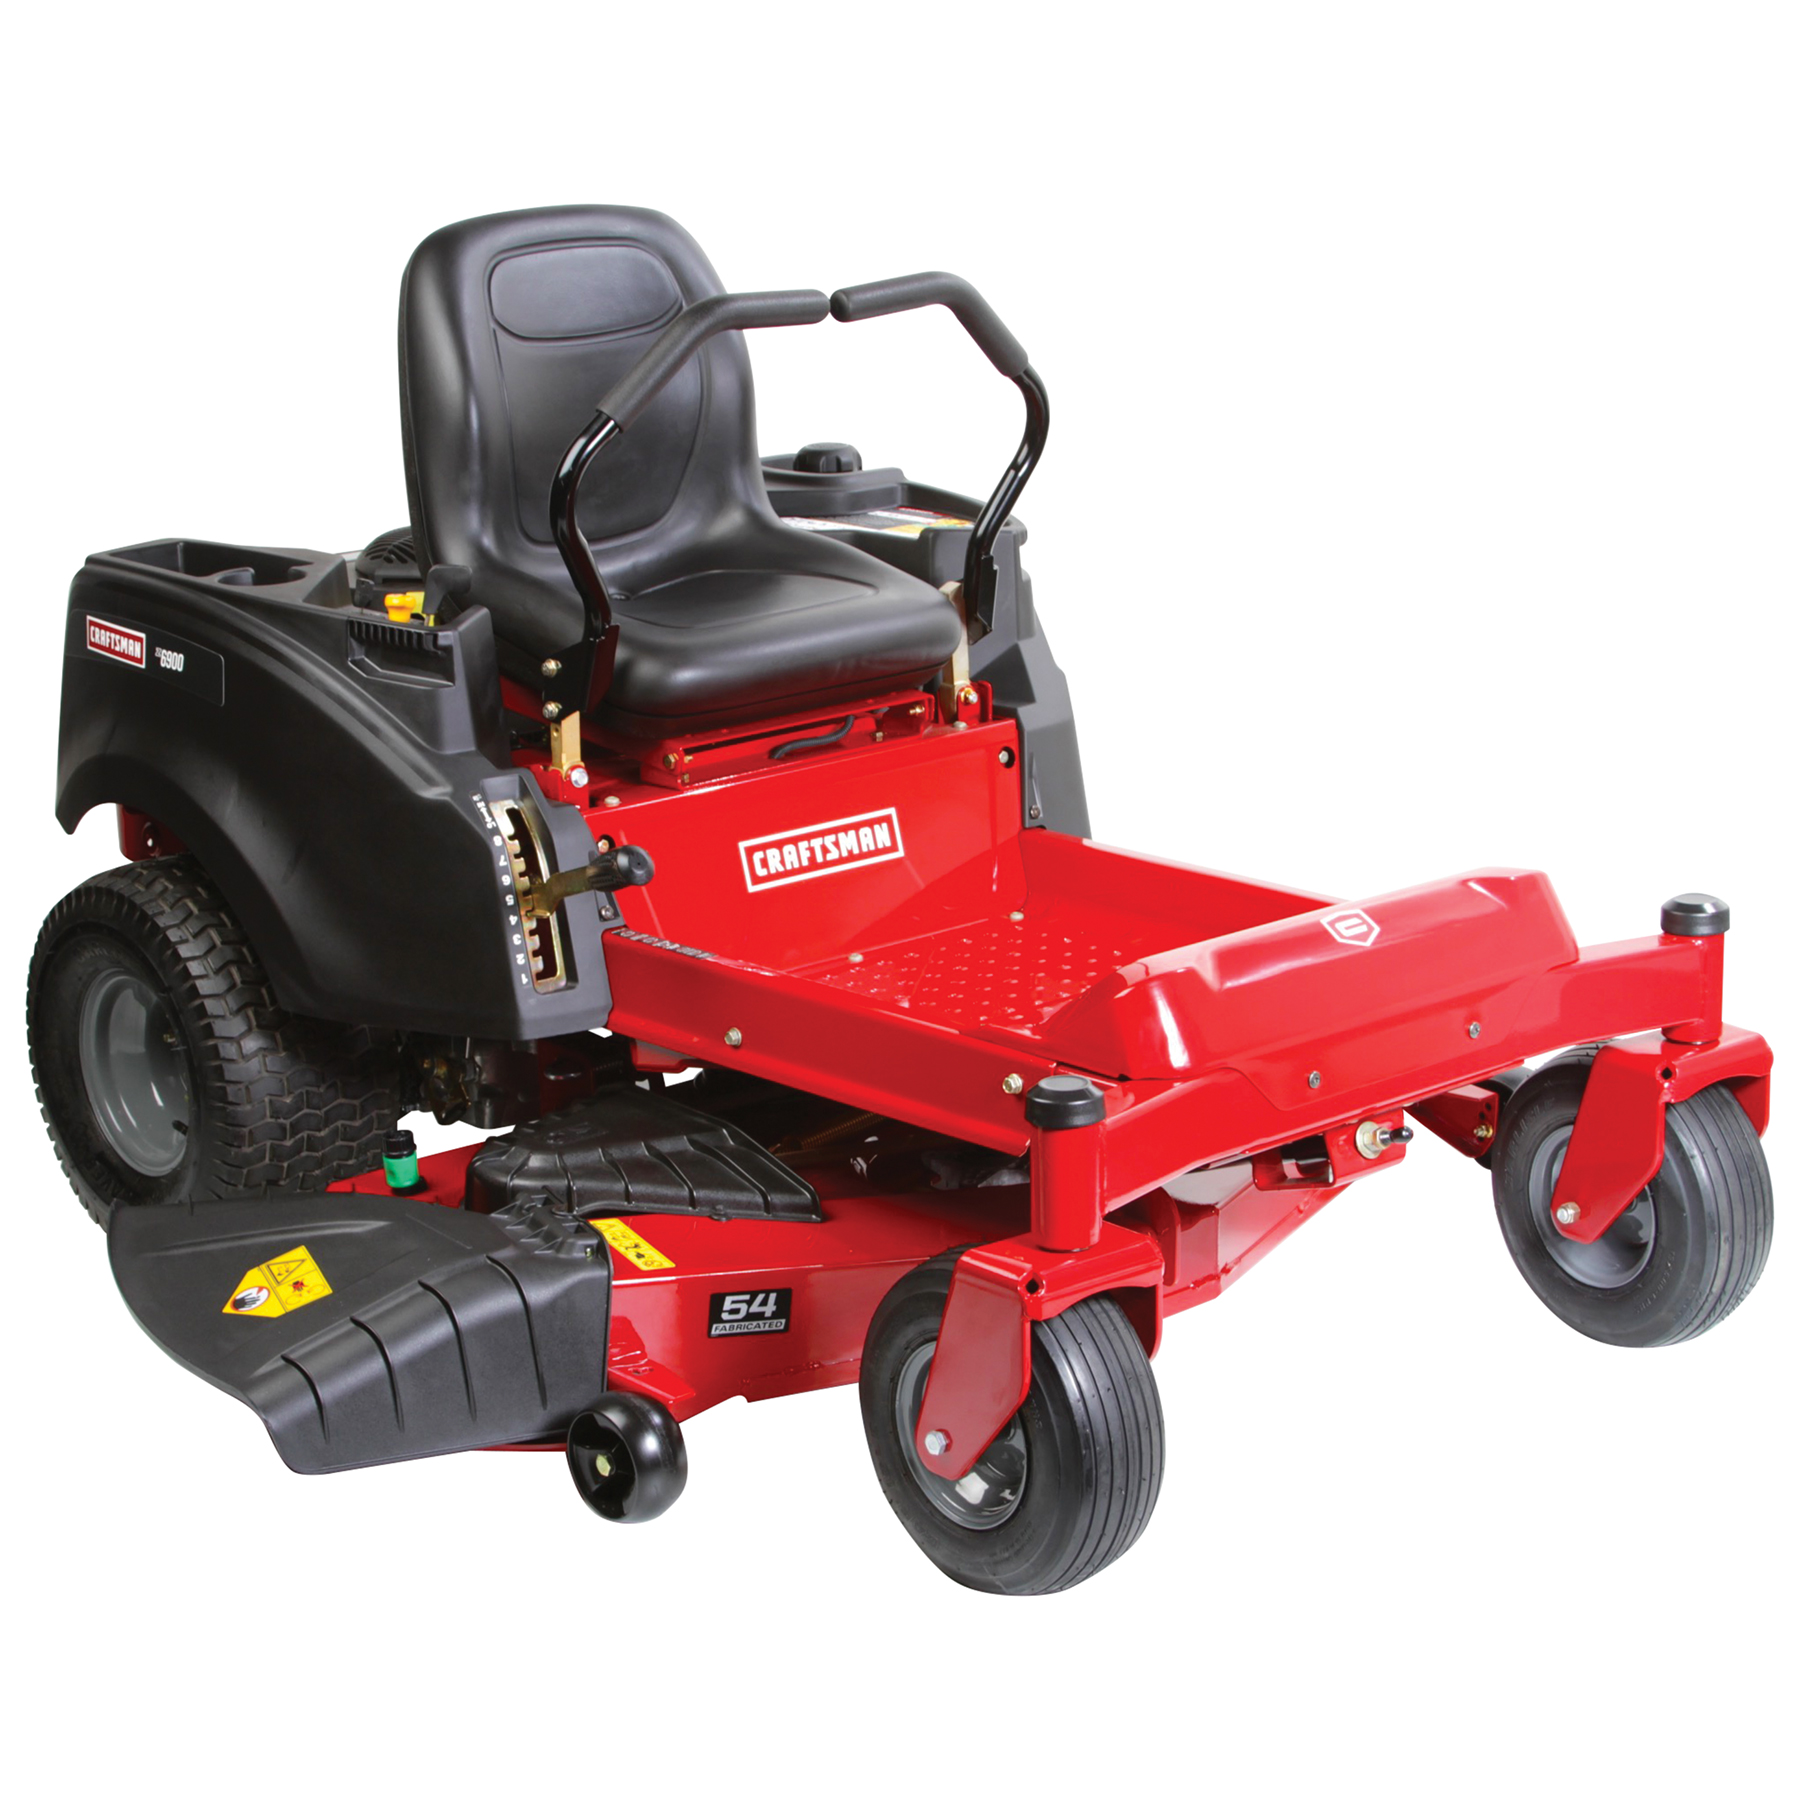 hight resolution of craftsman 27775 54 24 hp v twin kohler fabricated deck zero turn riding mower